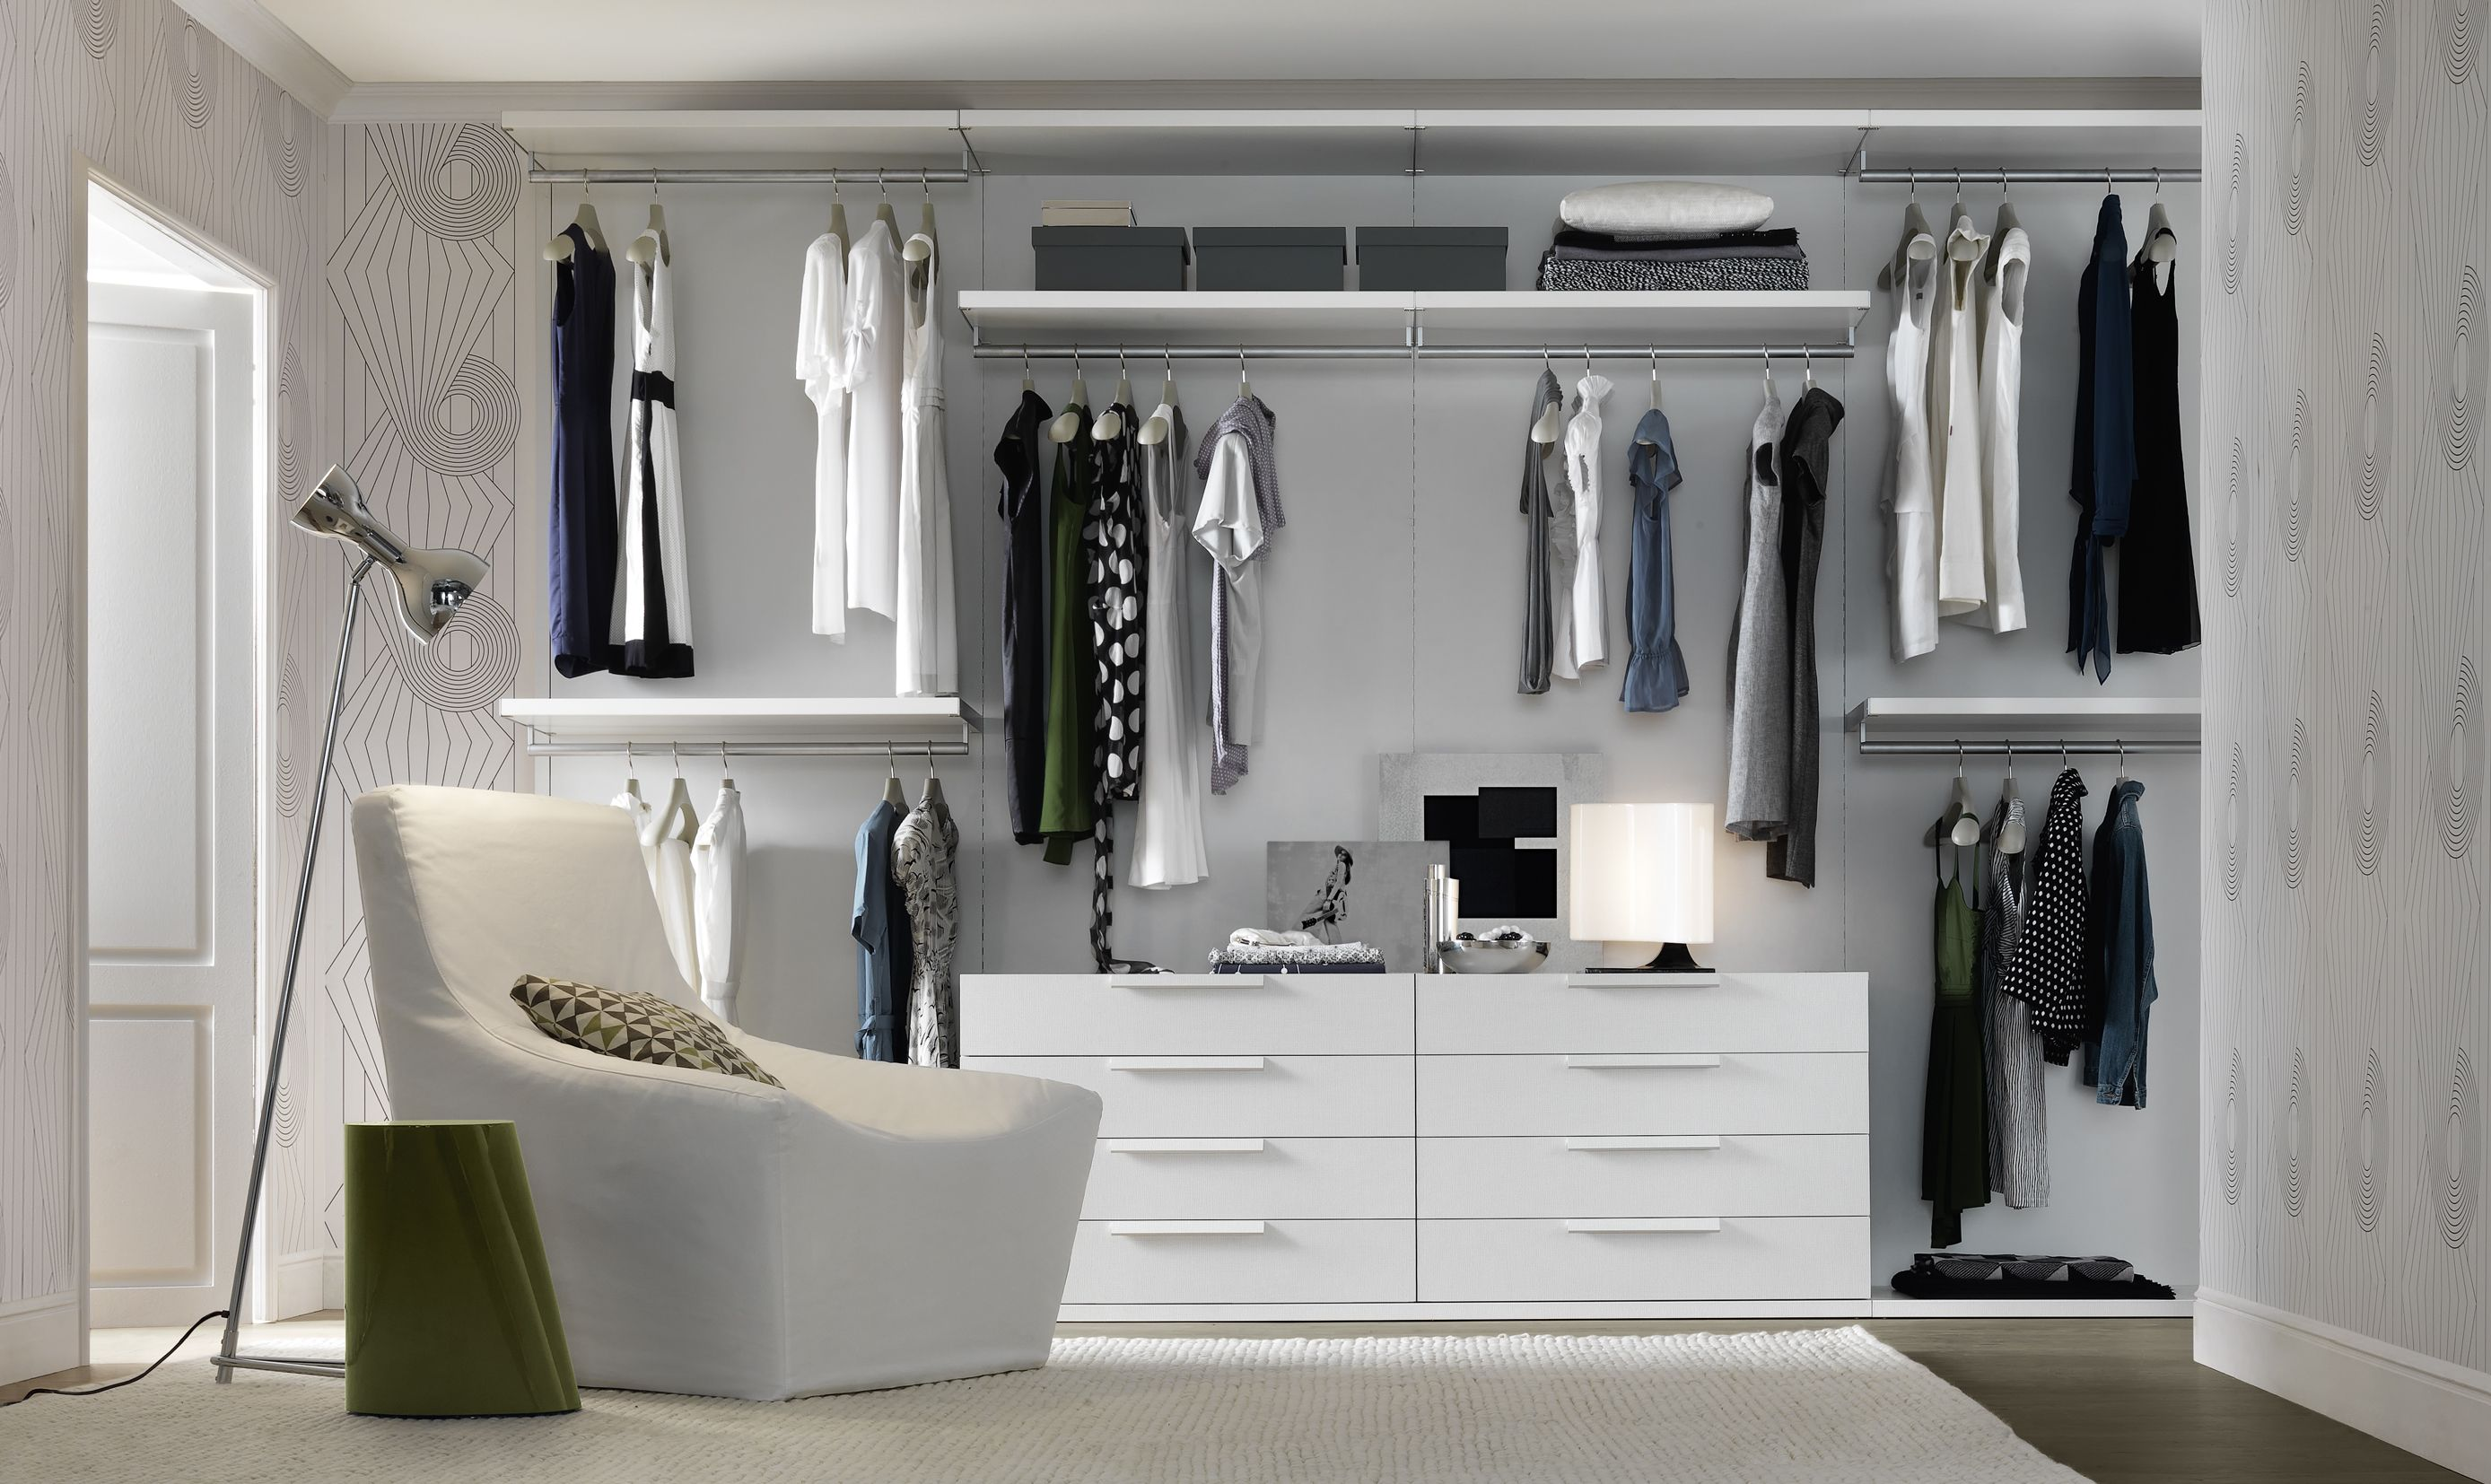 Beauteous White Minimalist Walk In Ikea Closet Open Storage Cabinetry For  Clothes Storage With 6 Drawers. Beauteous White Minimalist Walk In Ikea Closet Open Storage